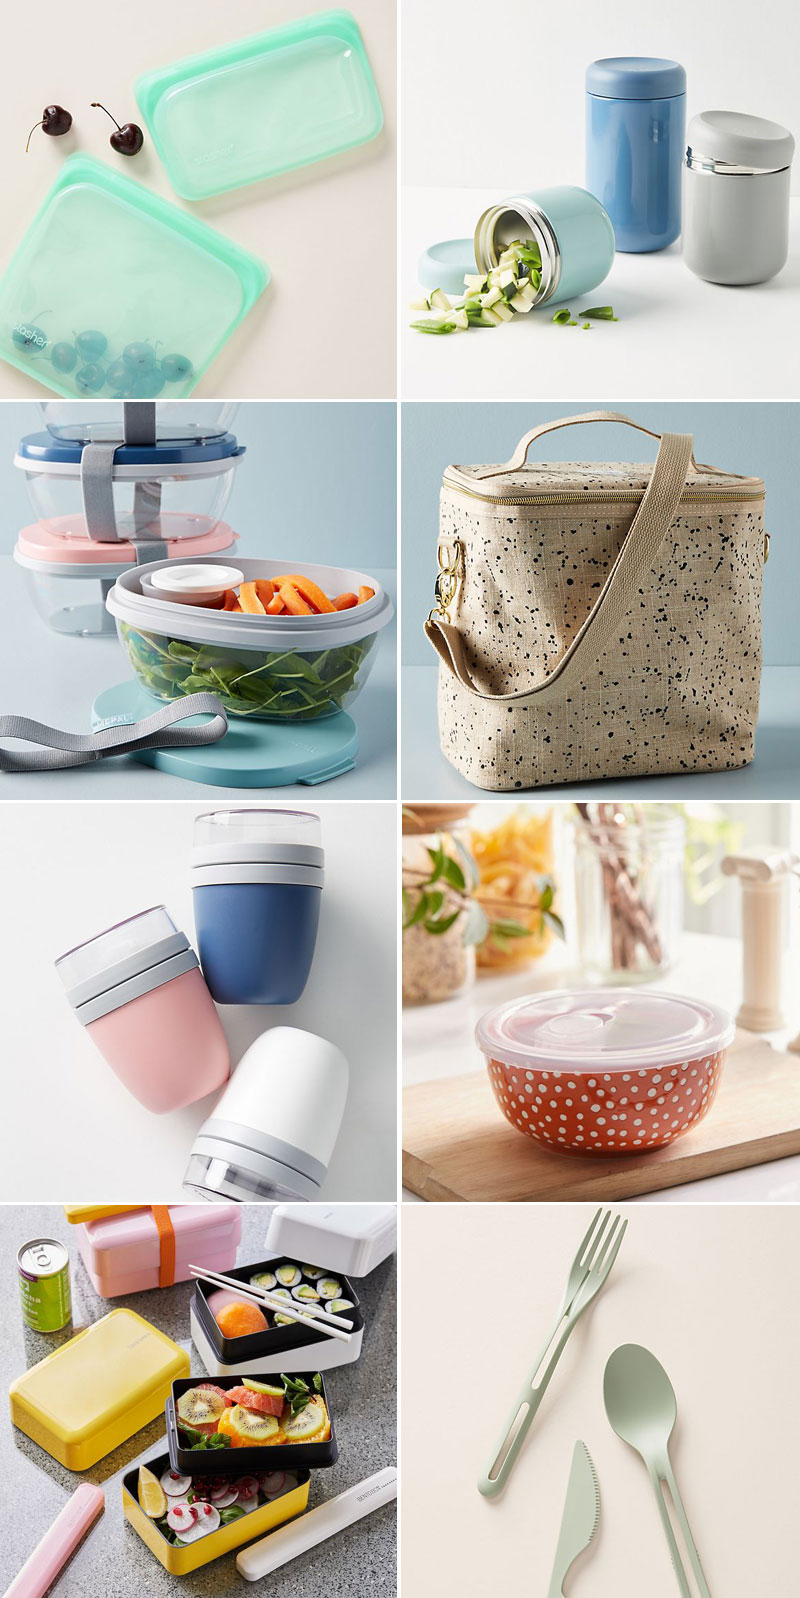 Bring Your Lunch To Work With These Chic Reusable Containers #zerowaste #zerowastliving #livegreen #eco #wellness #noplastic #reducewaste #lunchbag